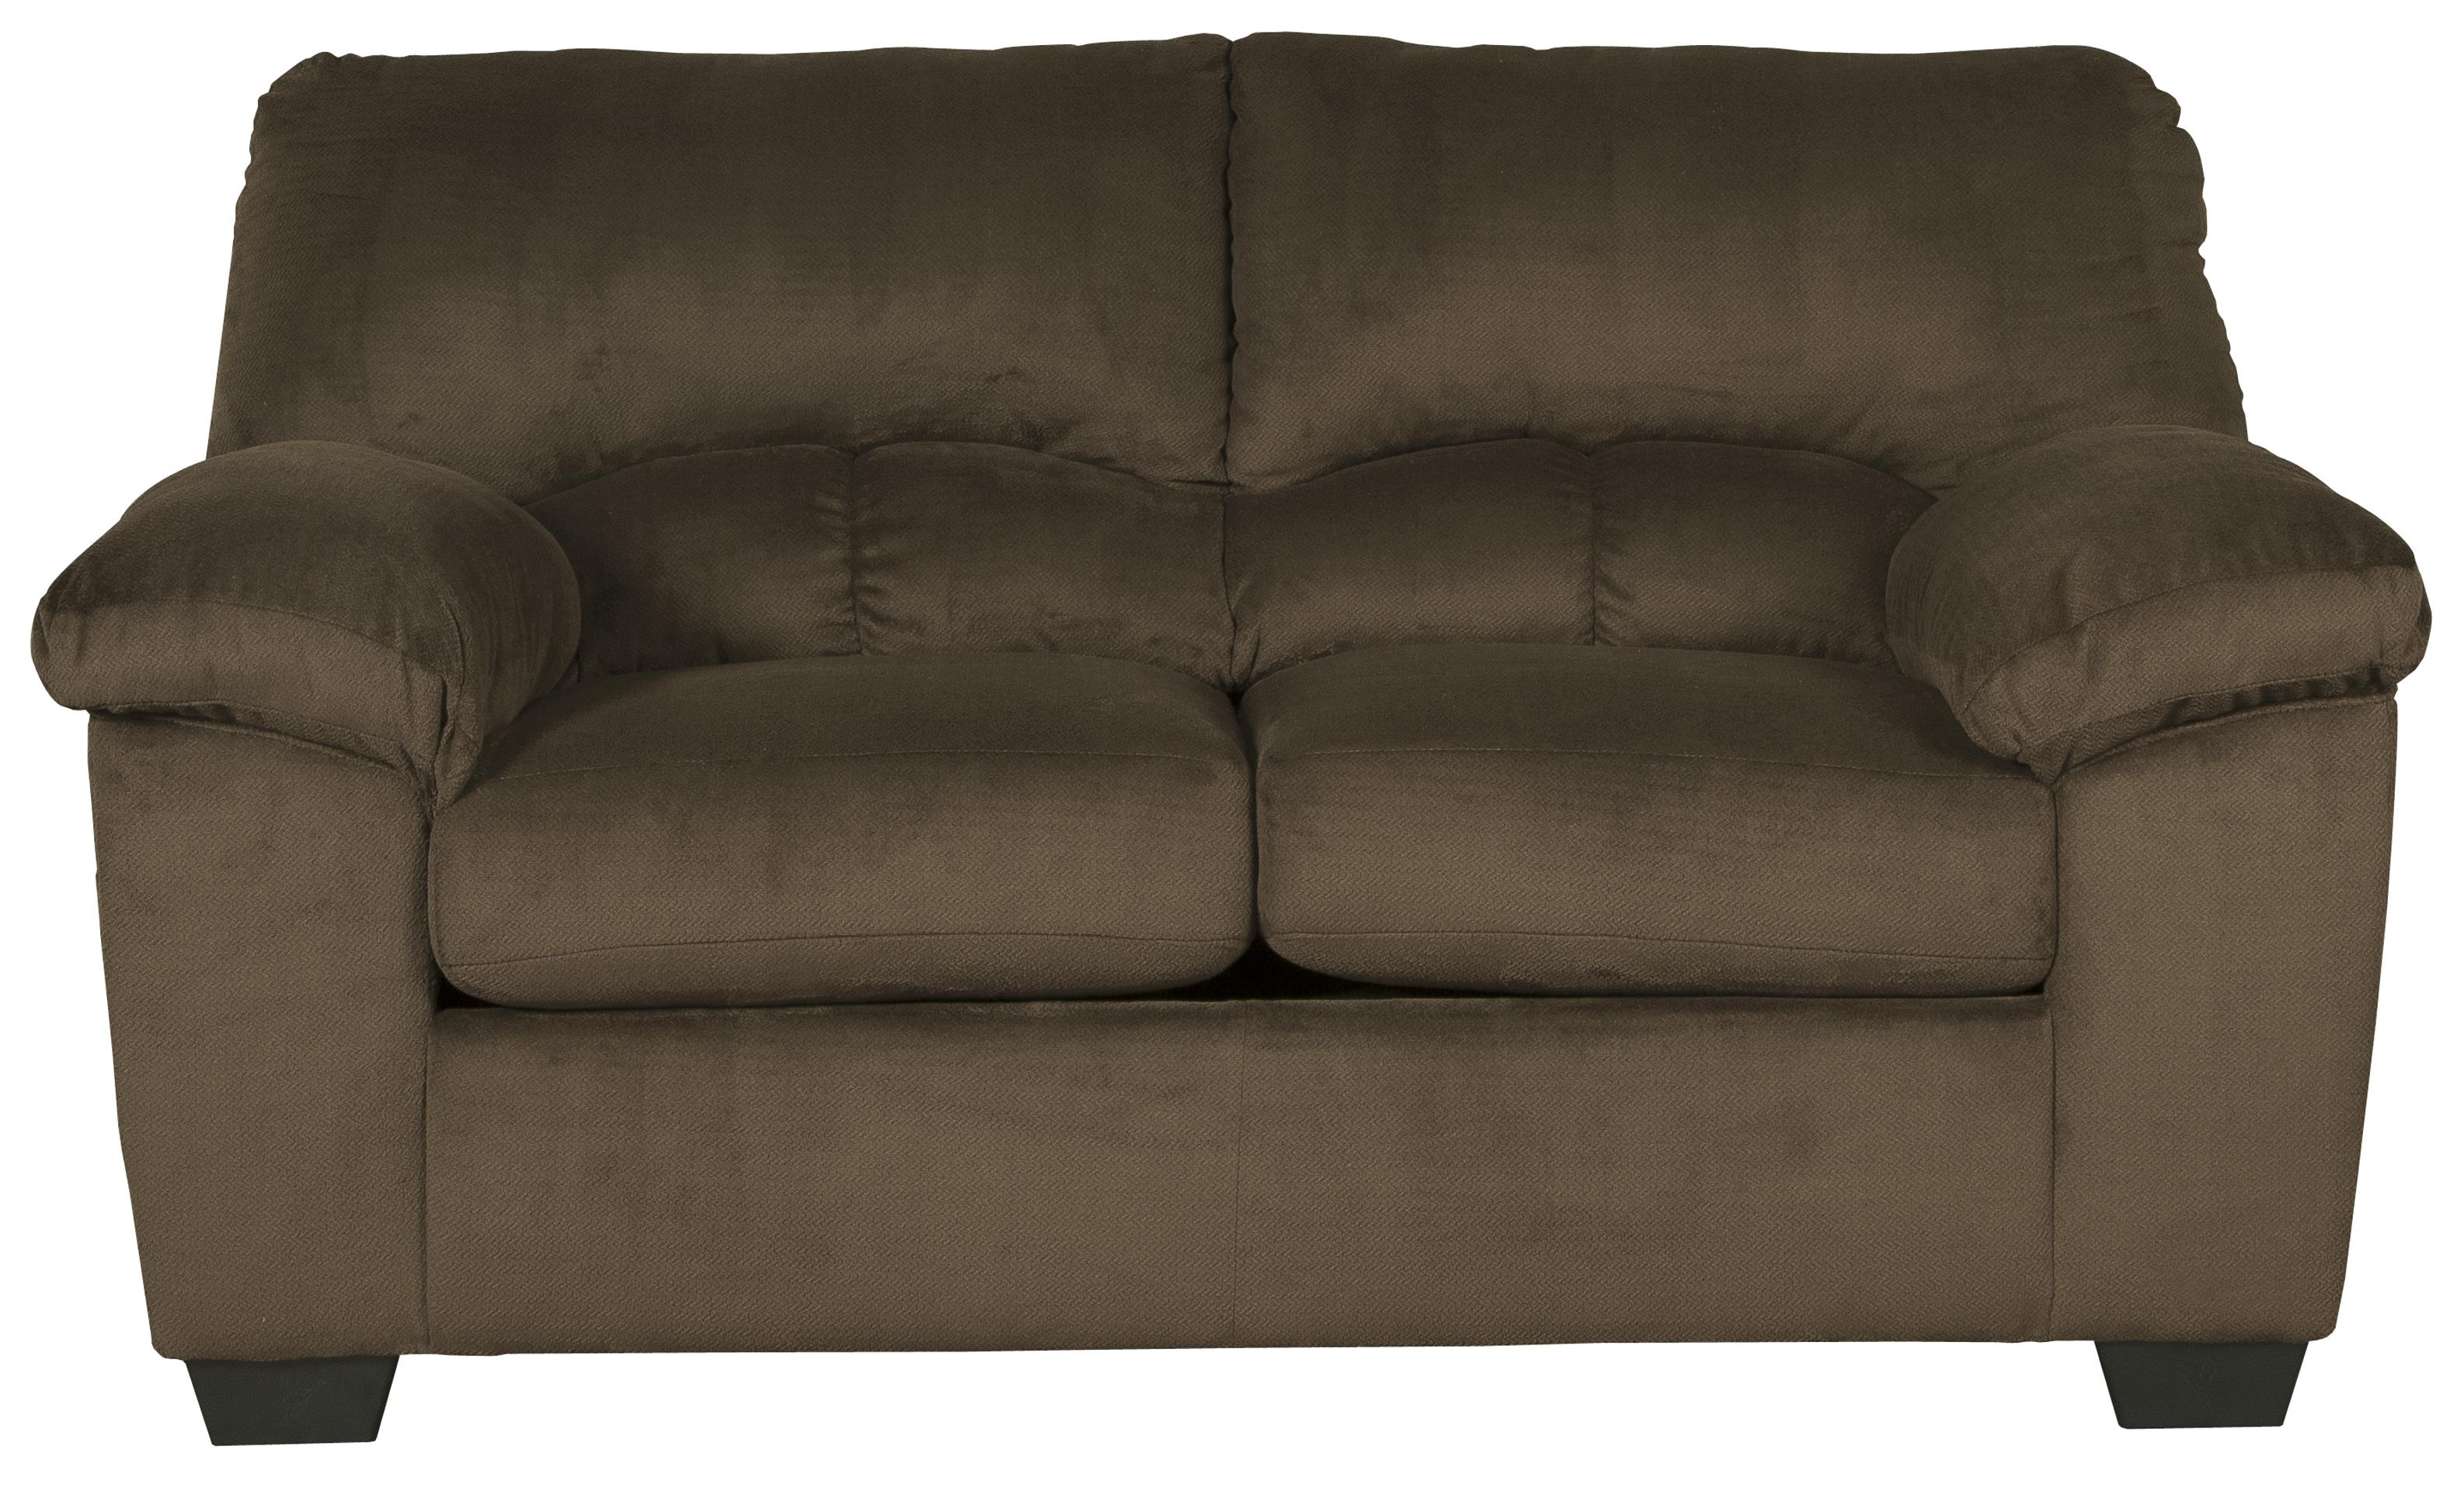 Signature Design By Ashley Dailey Casual Contemporary Loveseat Boulevard Home Furnishings